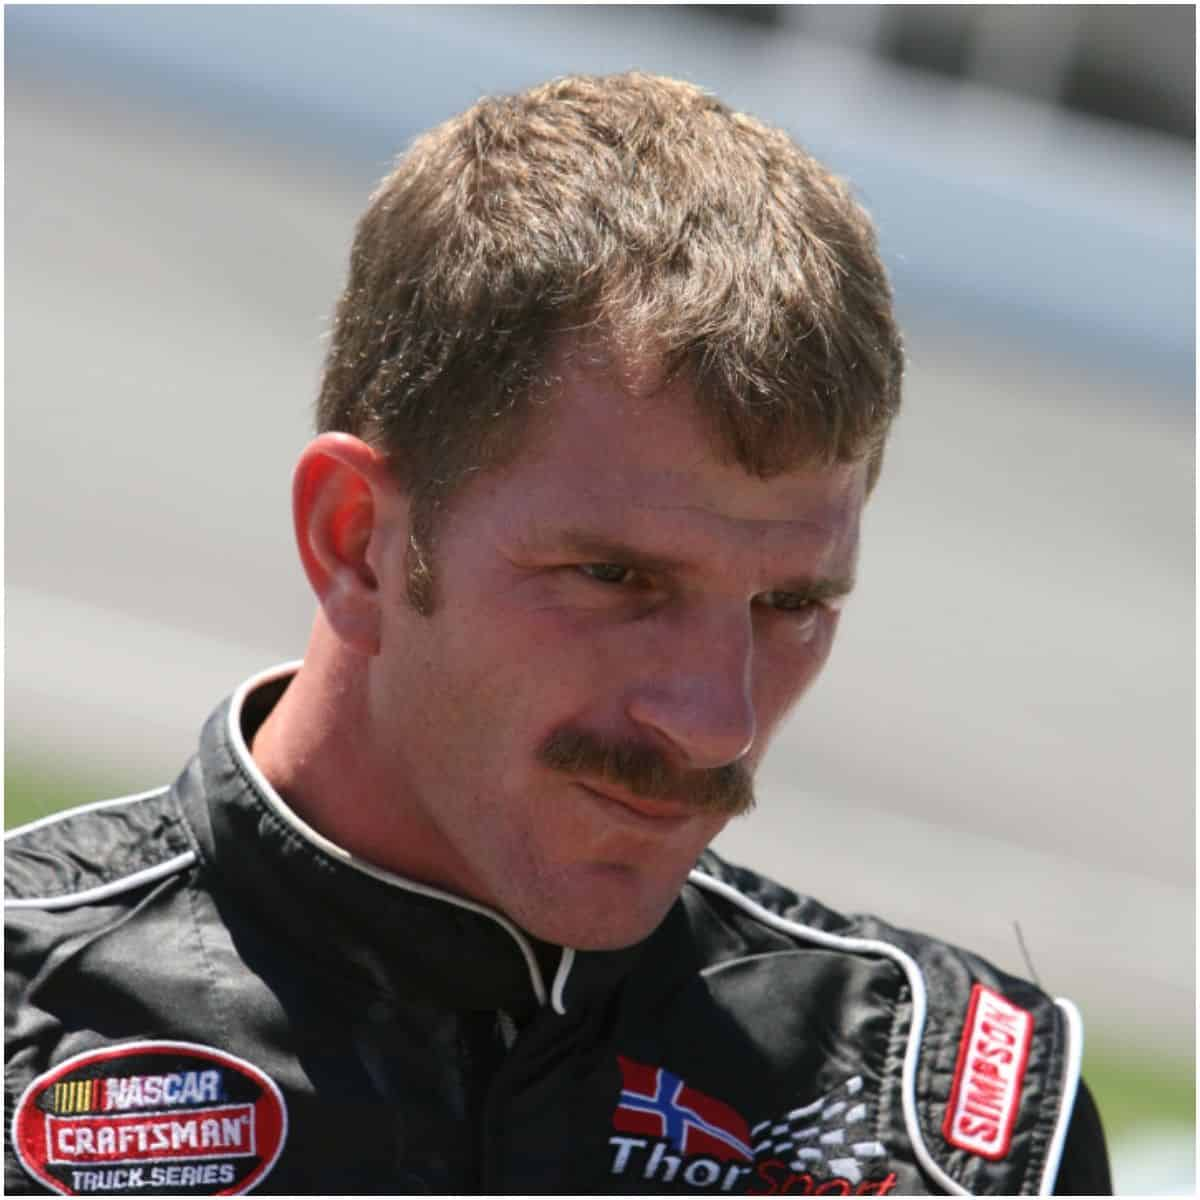 what is the net worth of Kerry Earnhardt